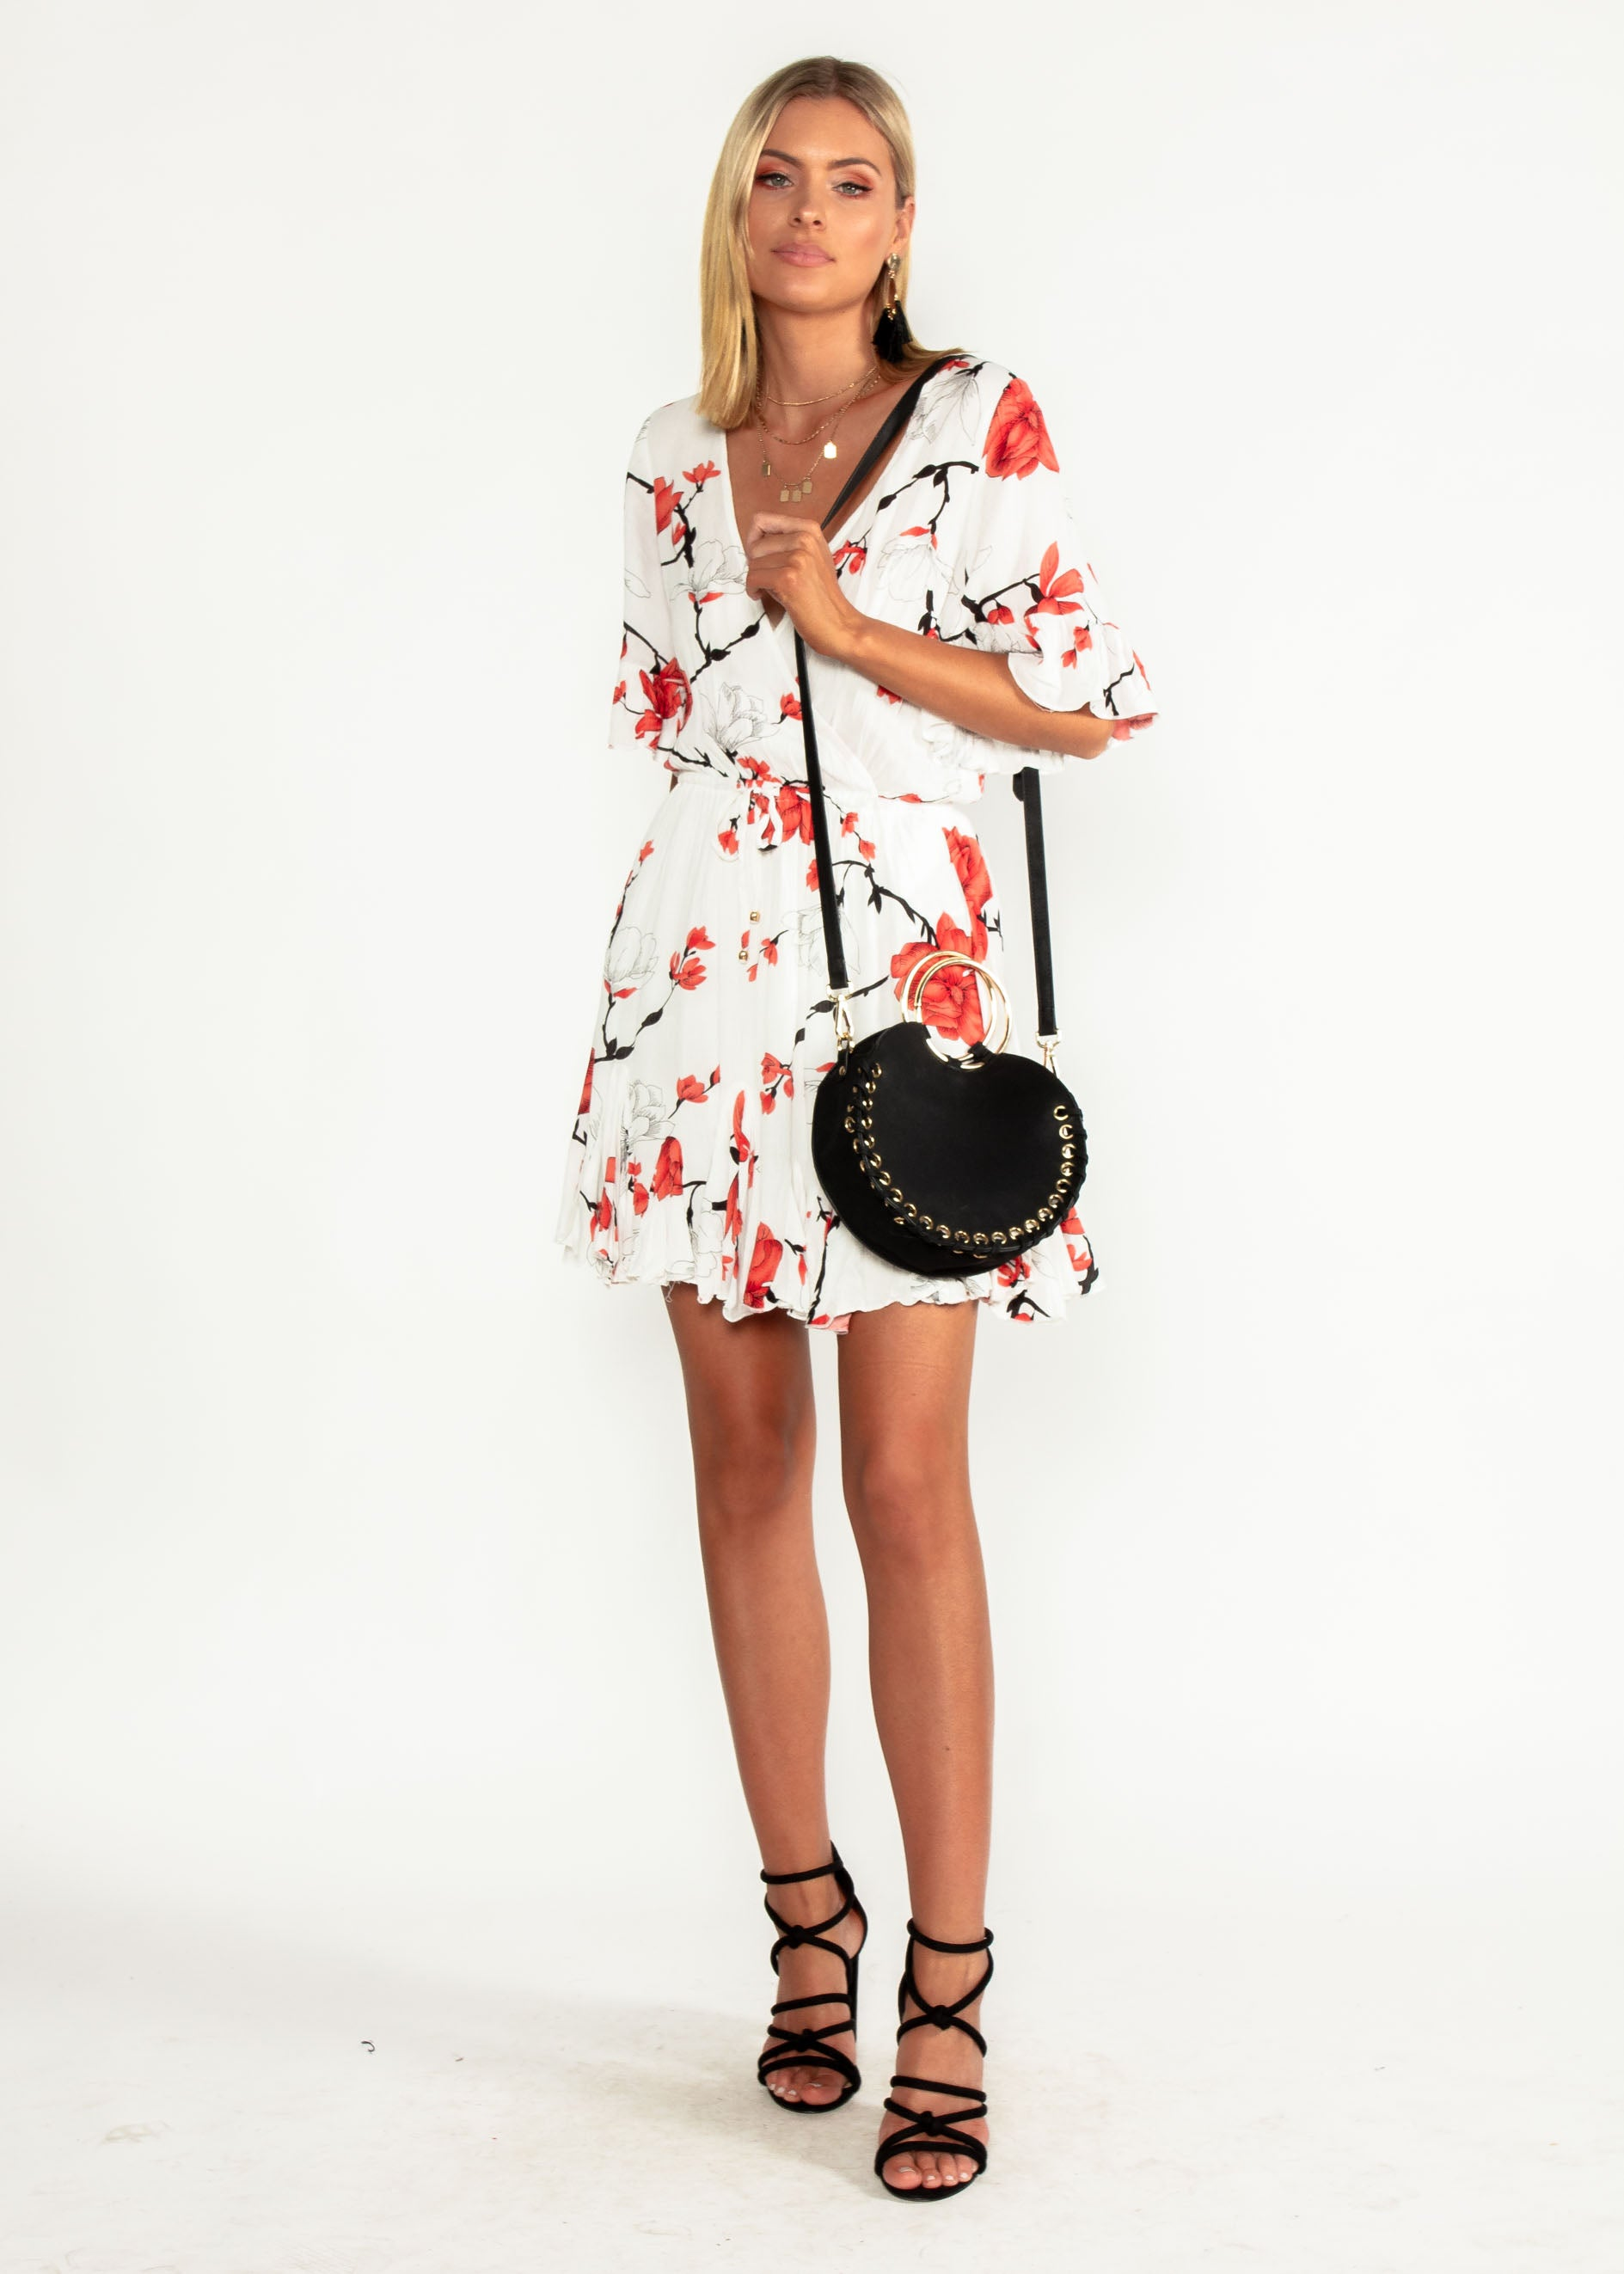 Introducing Me Dress - White/Red Floral